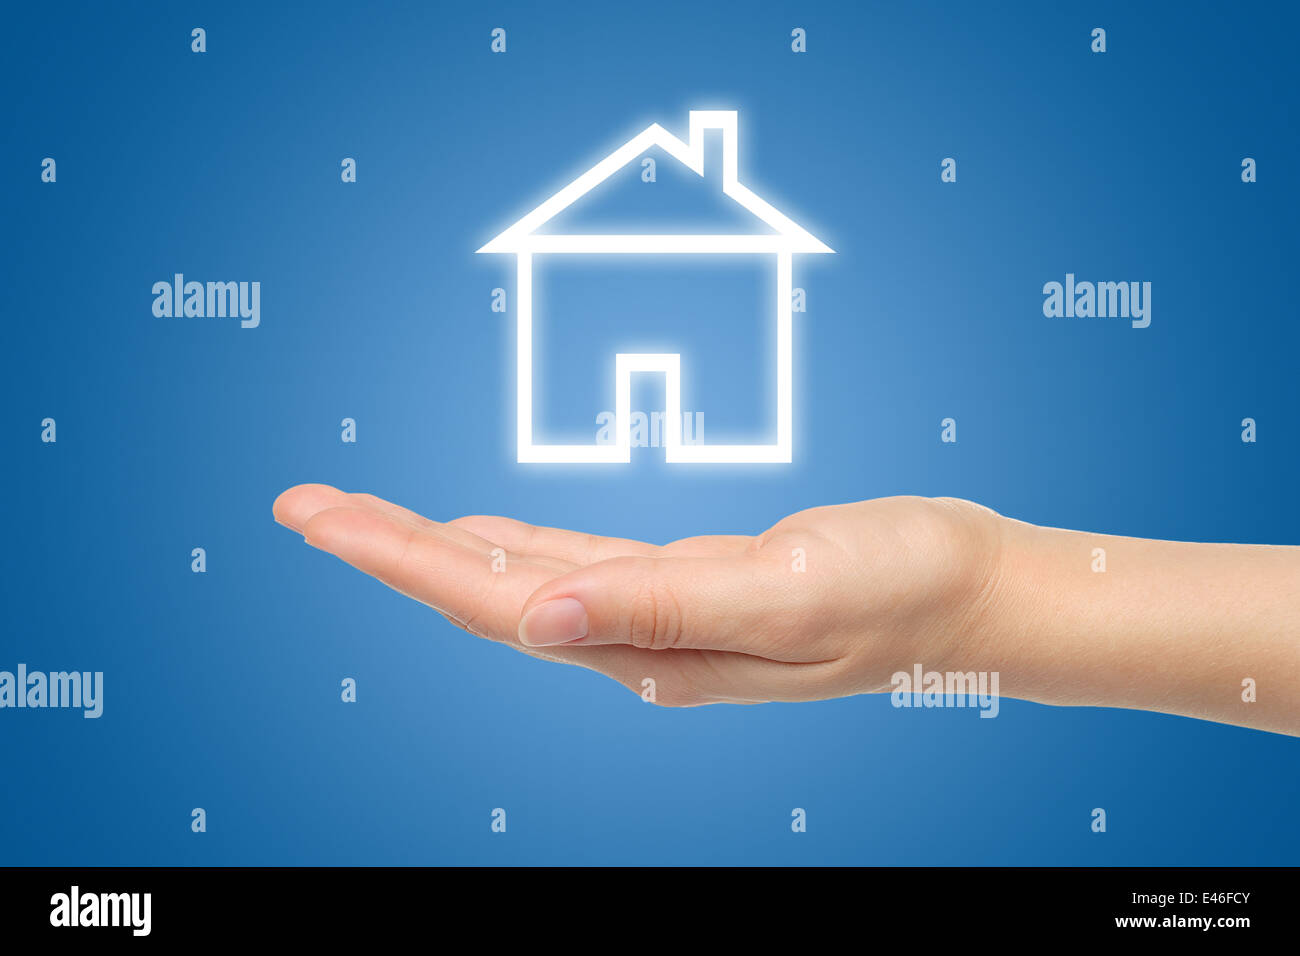 Virtual house with woman hand on blue background - Stock Image